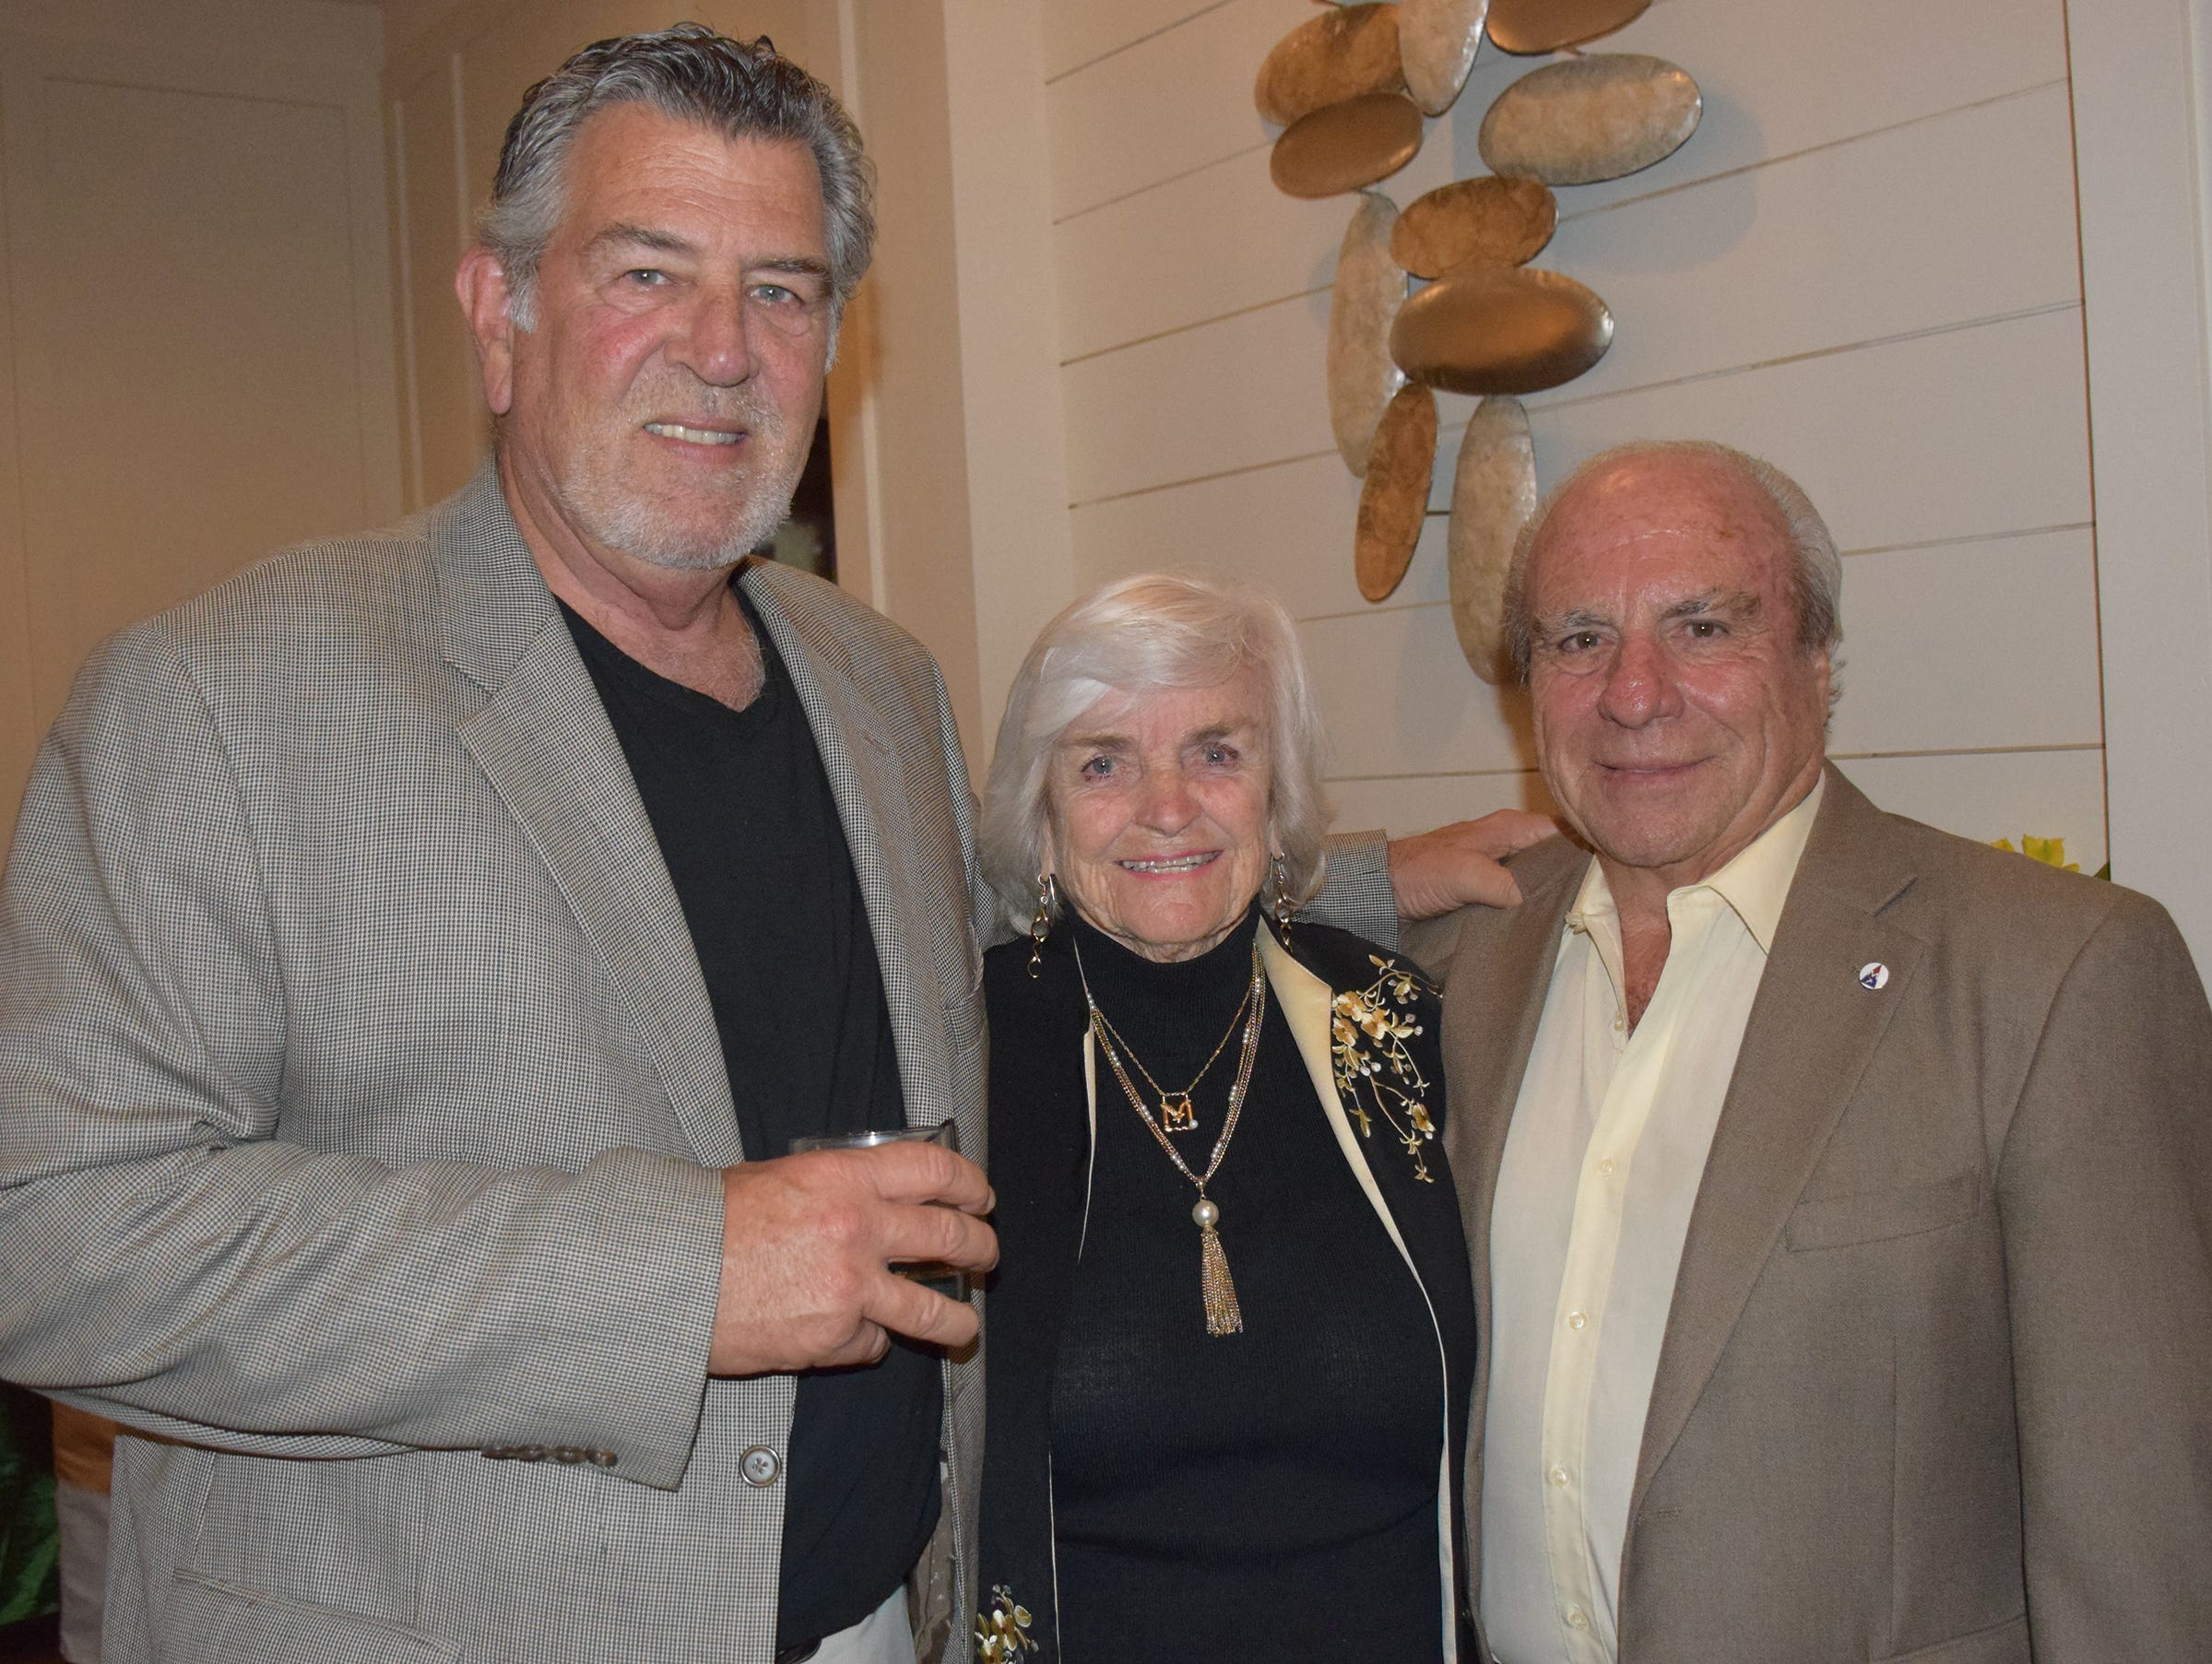 Pat Rogers, left, and Marcia And Gavin Ruotulo at the Diamonds in the Rough Gala at Grand Harbor Golf & Beach Club on Jan.24.